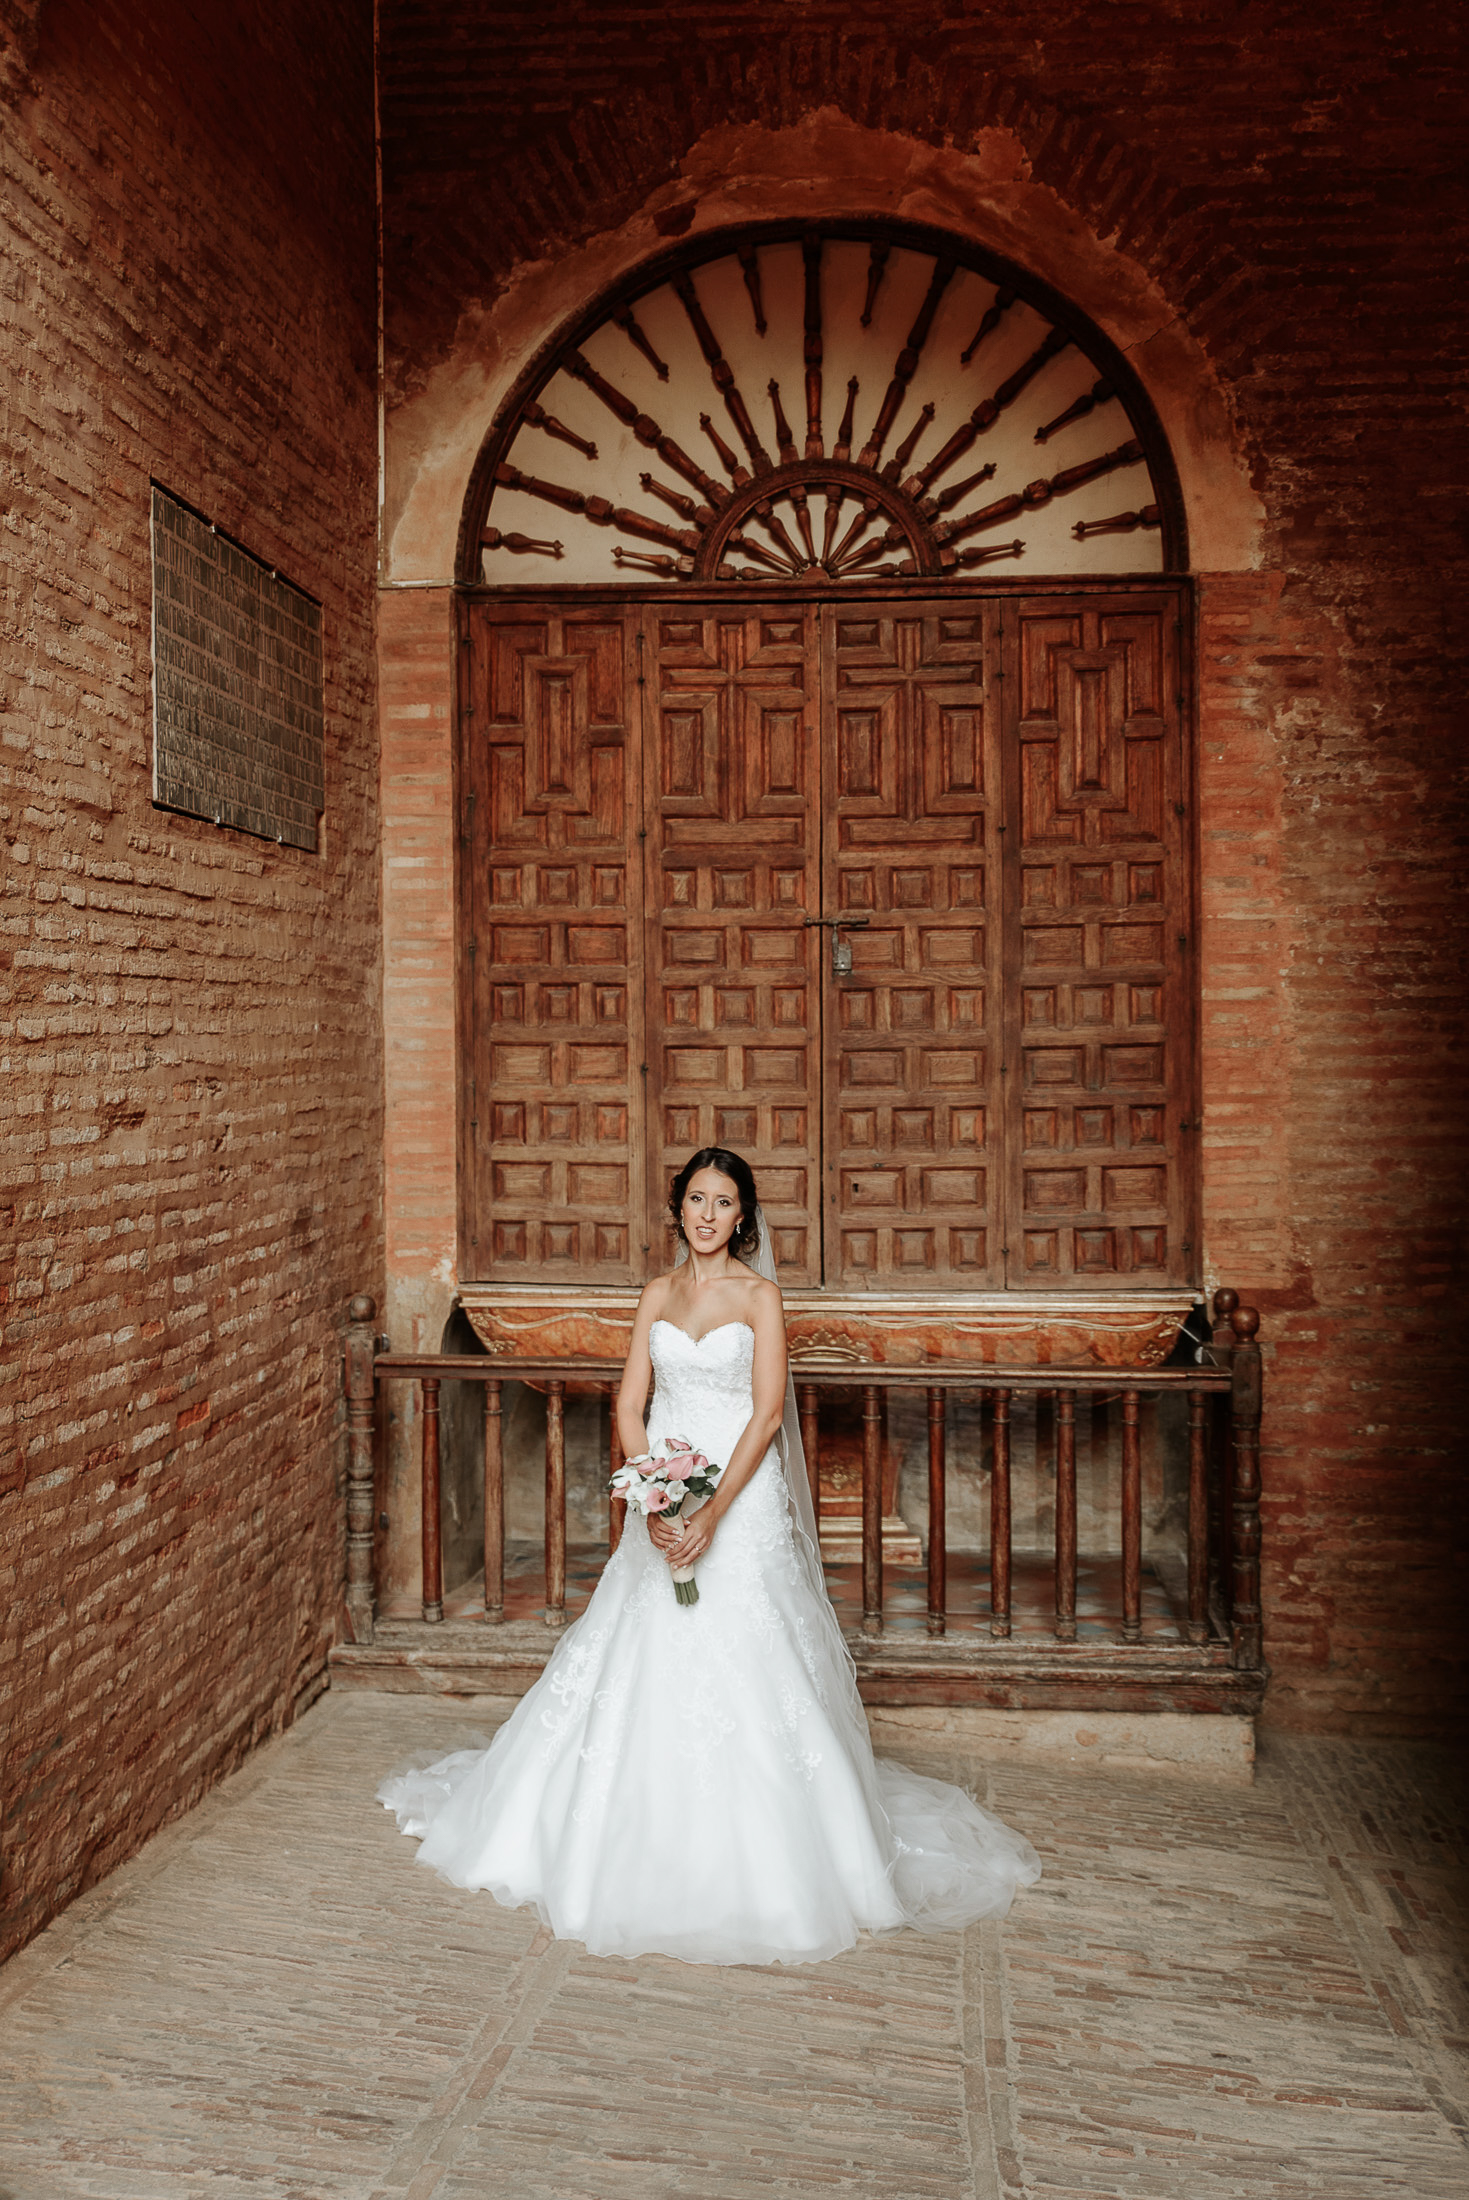 Bride in Gate of Justice, Wedding in Alhambra